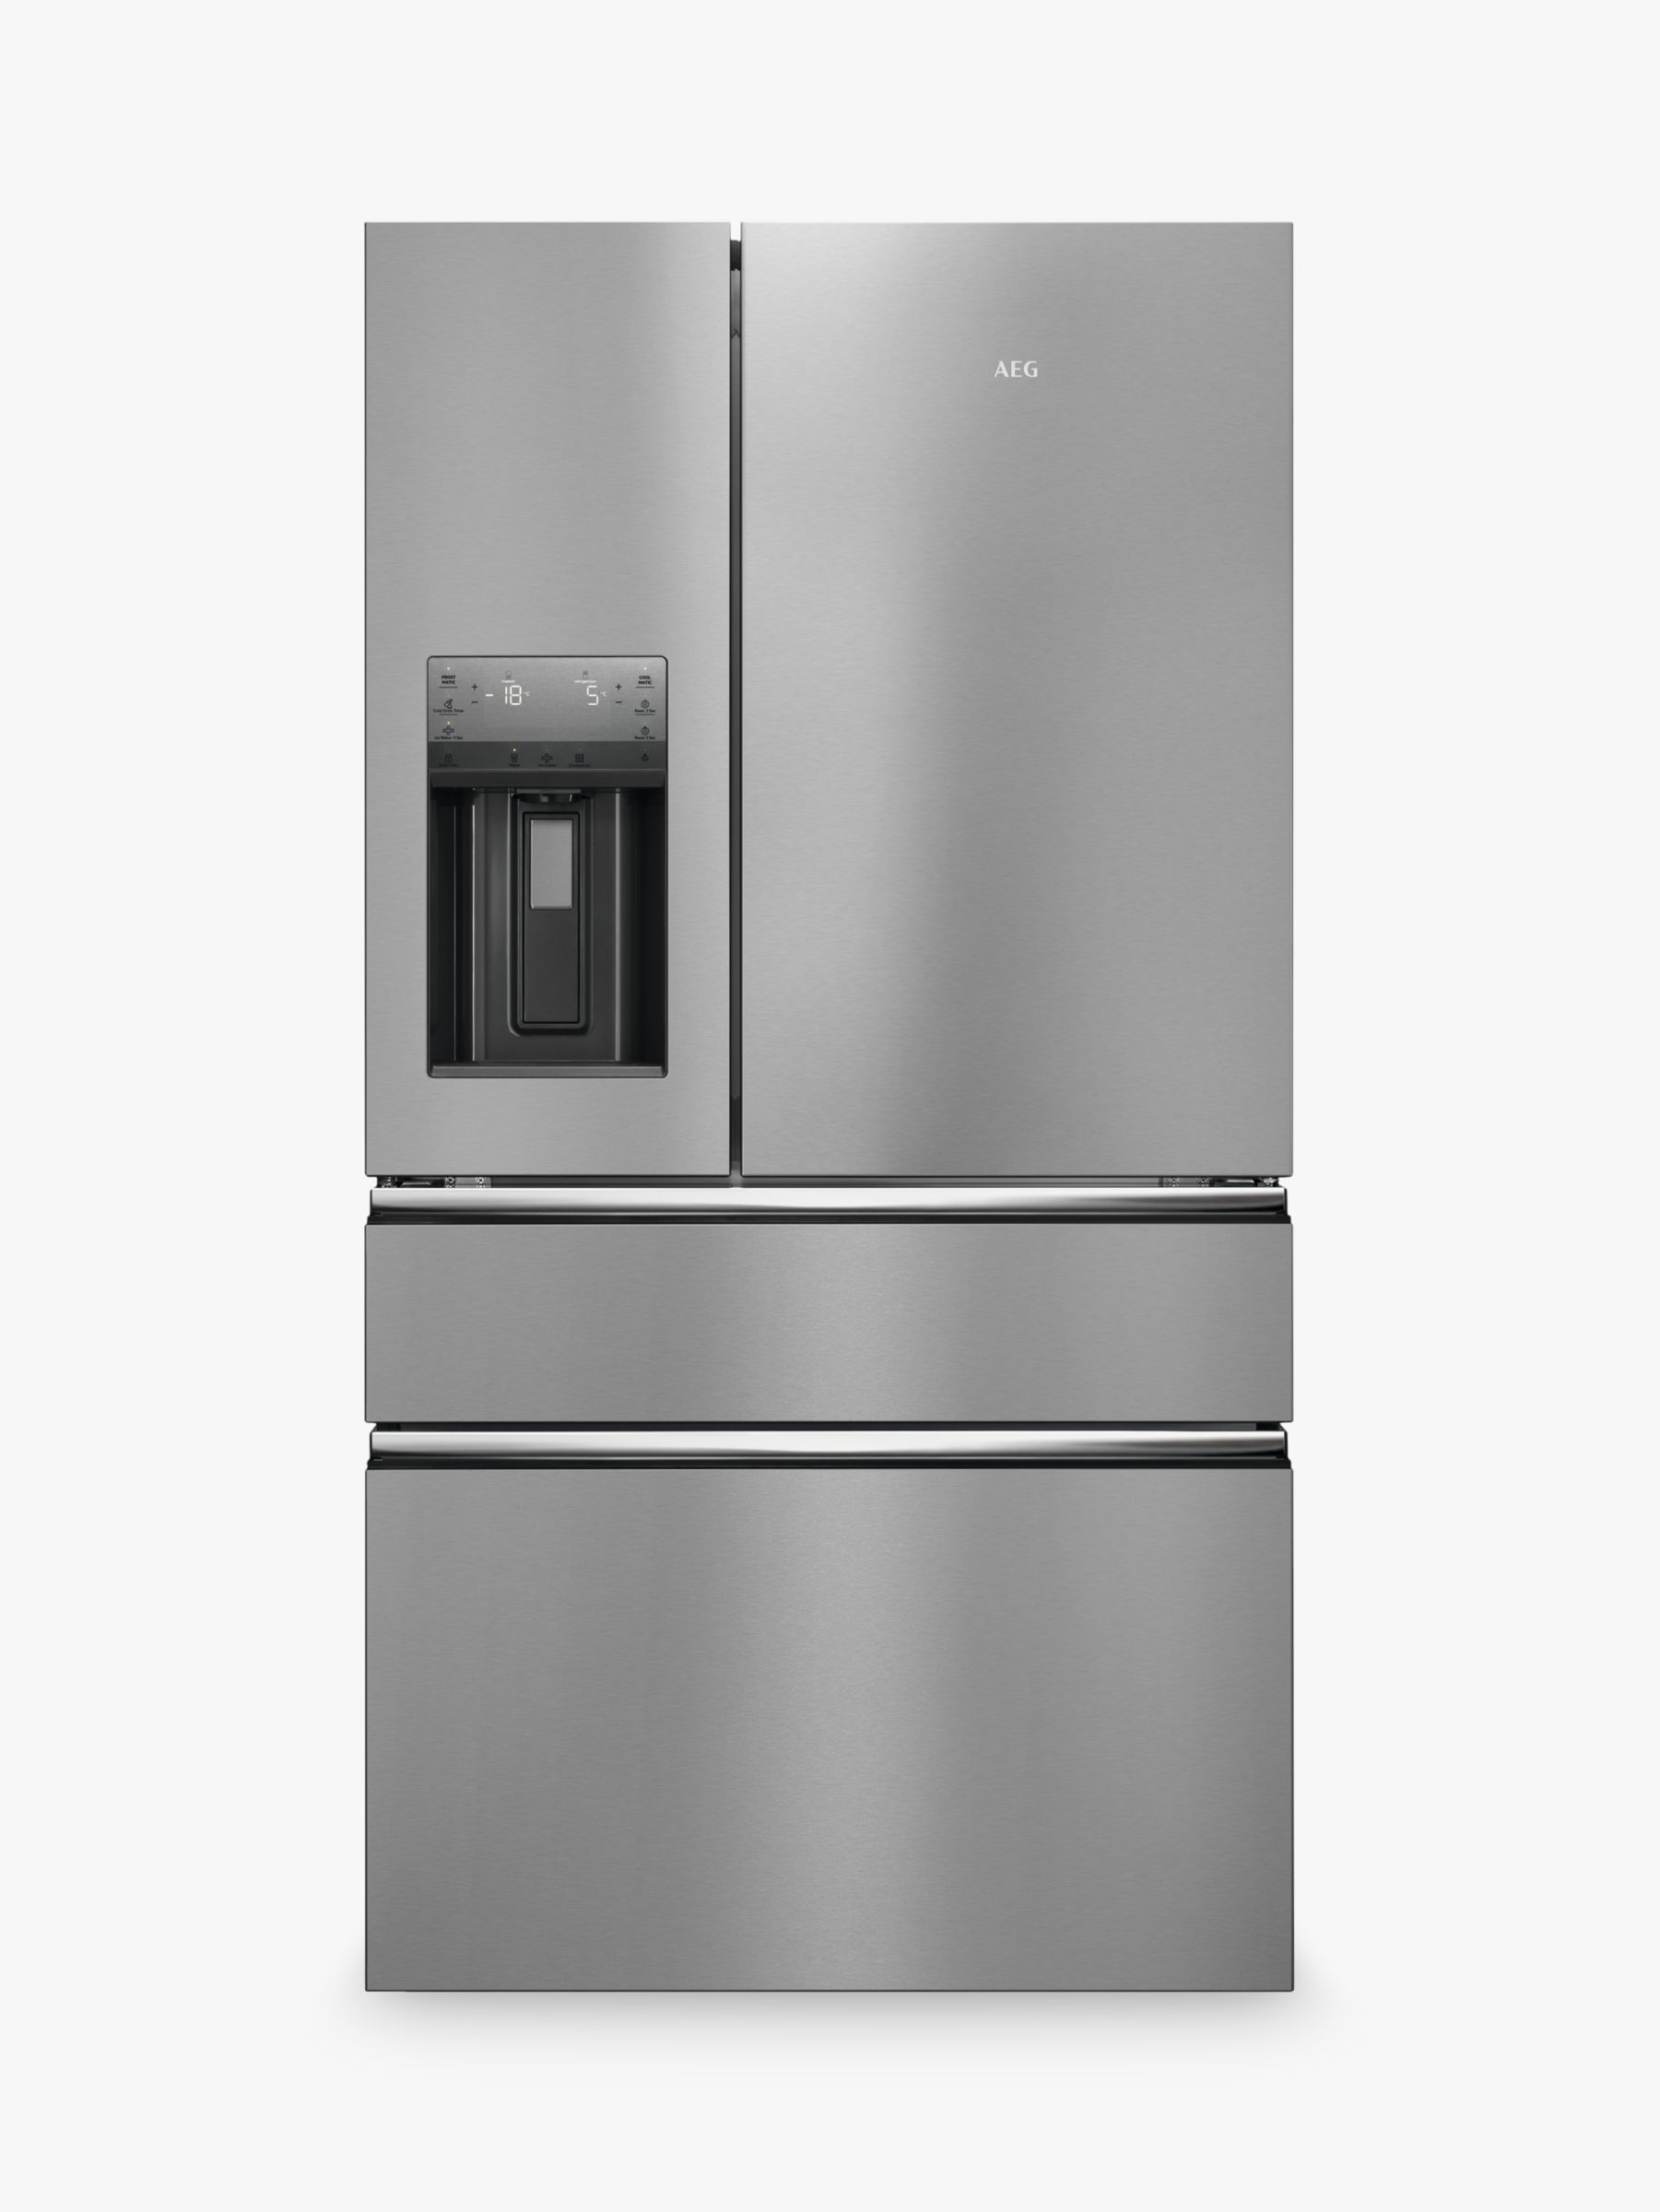 AEG AEG RMB96716CX American Style Fridge Freezer, A+ Energy Rating, 91.3cm Wide, Silver